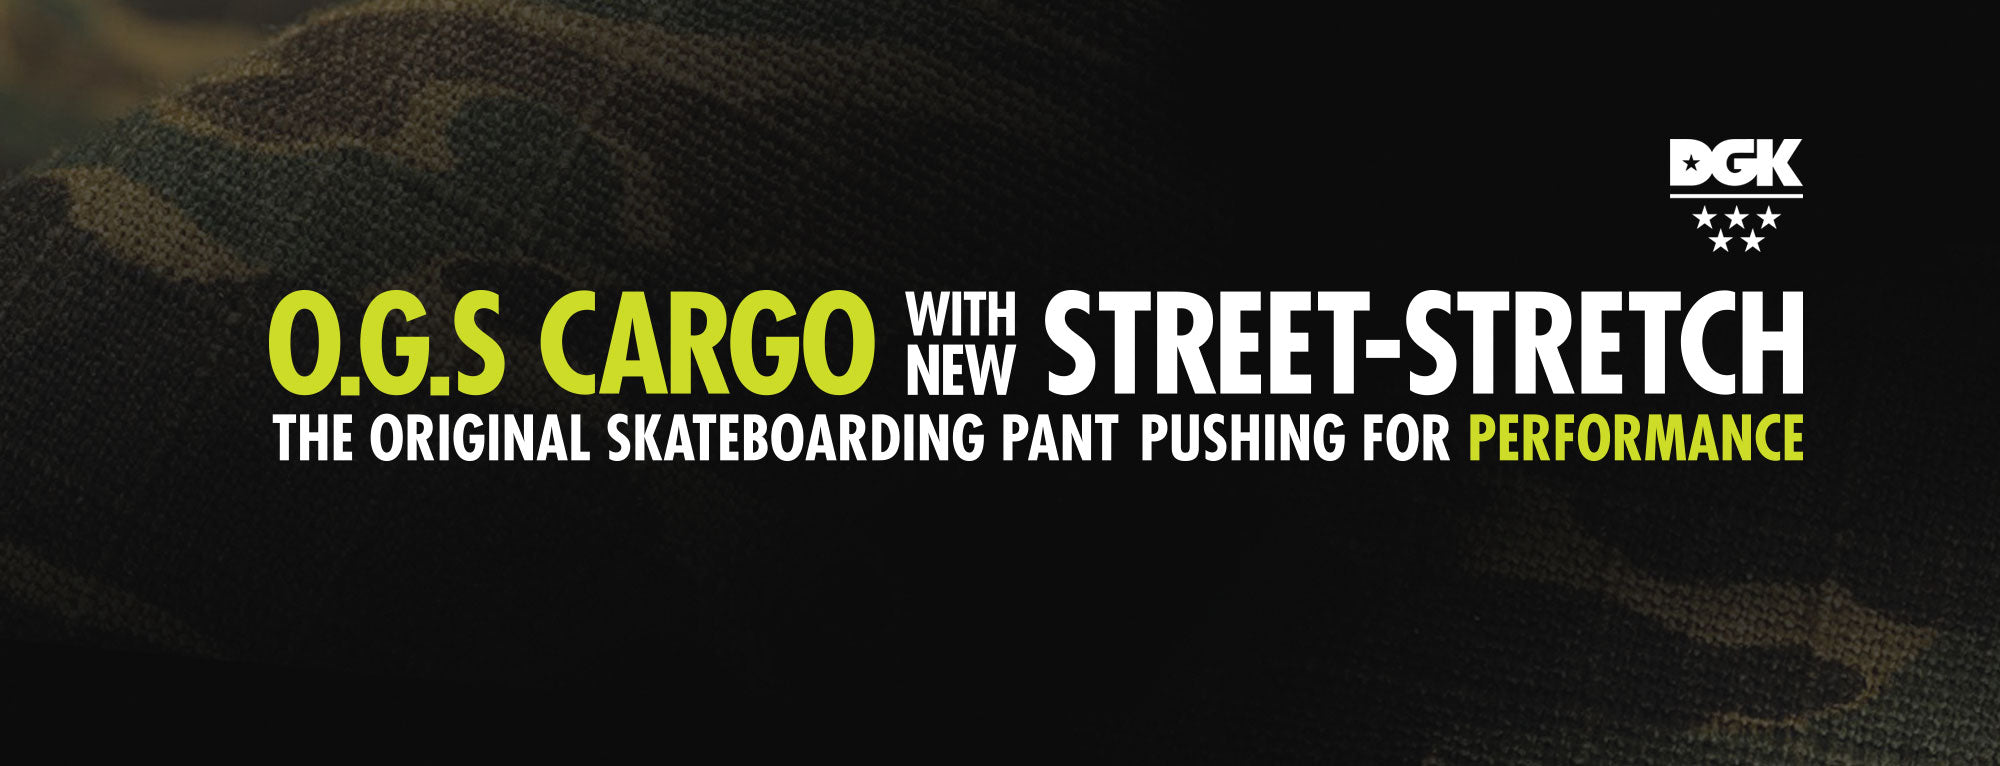 DGK O.G.S CARGO STREET-STRETCH PANTS